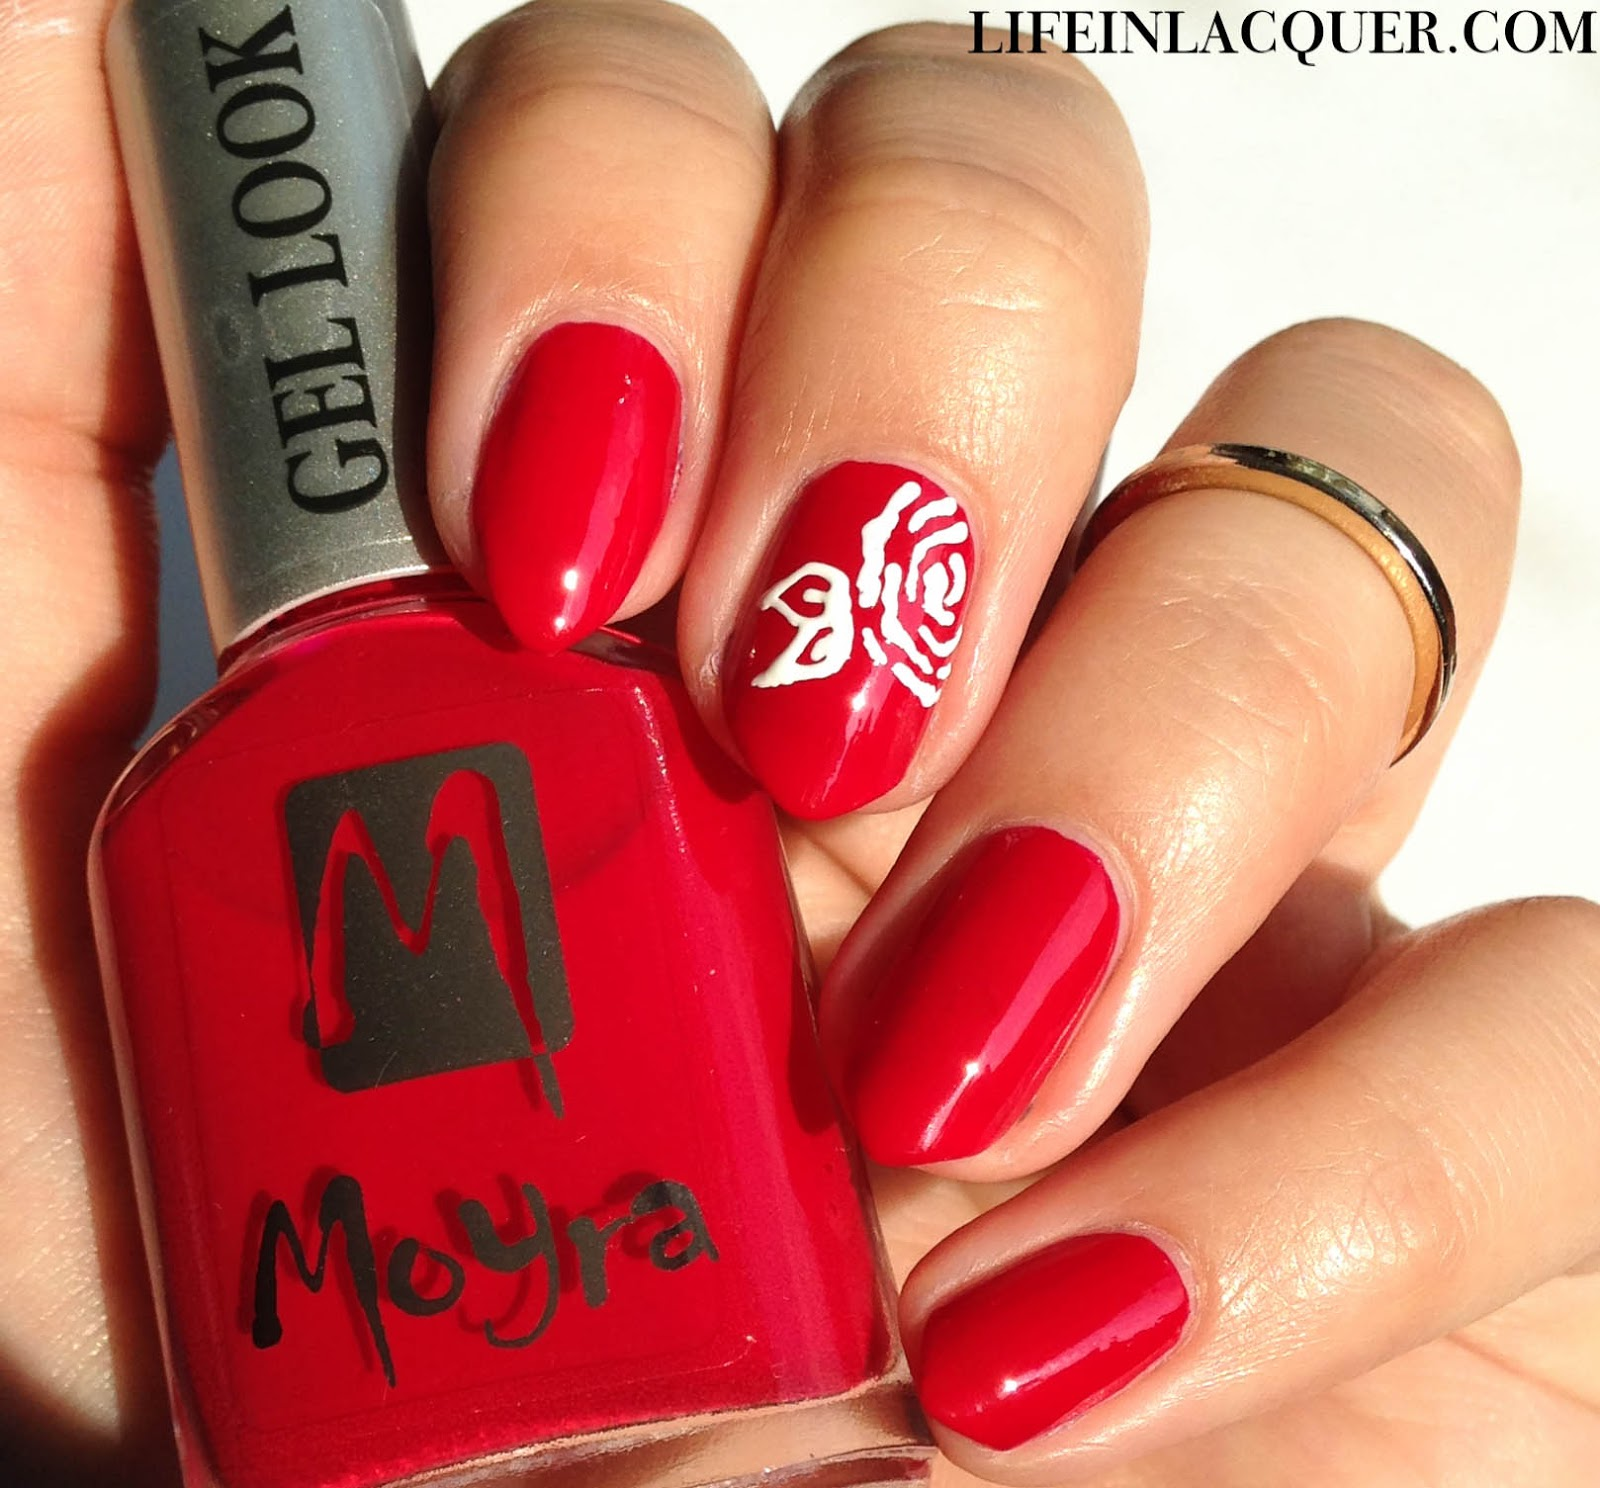 Moyra Beatrice swatch and rose nail art